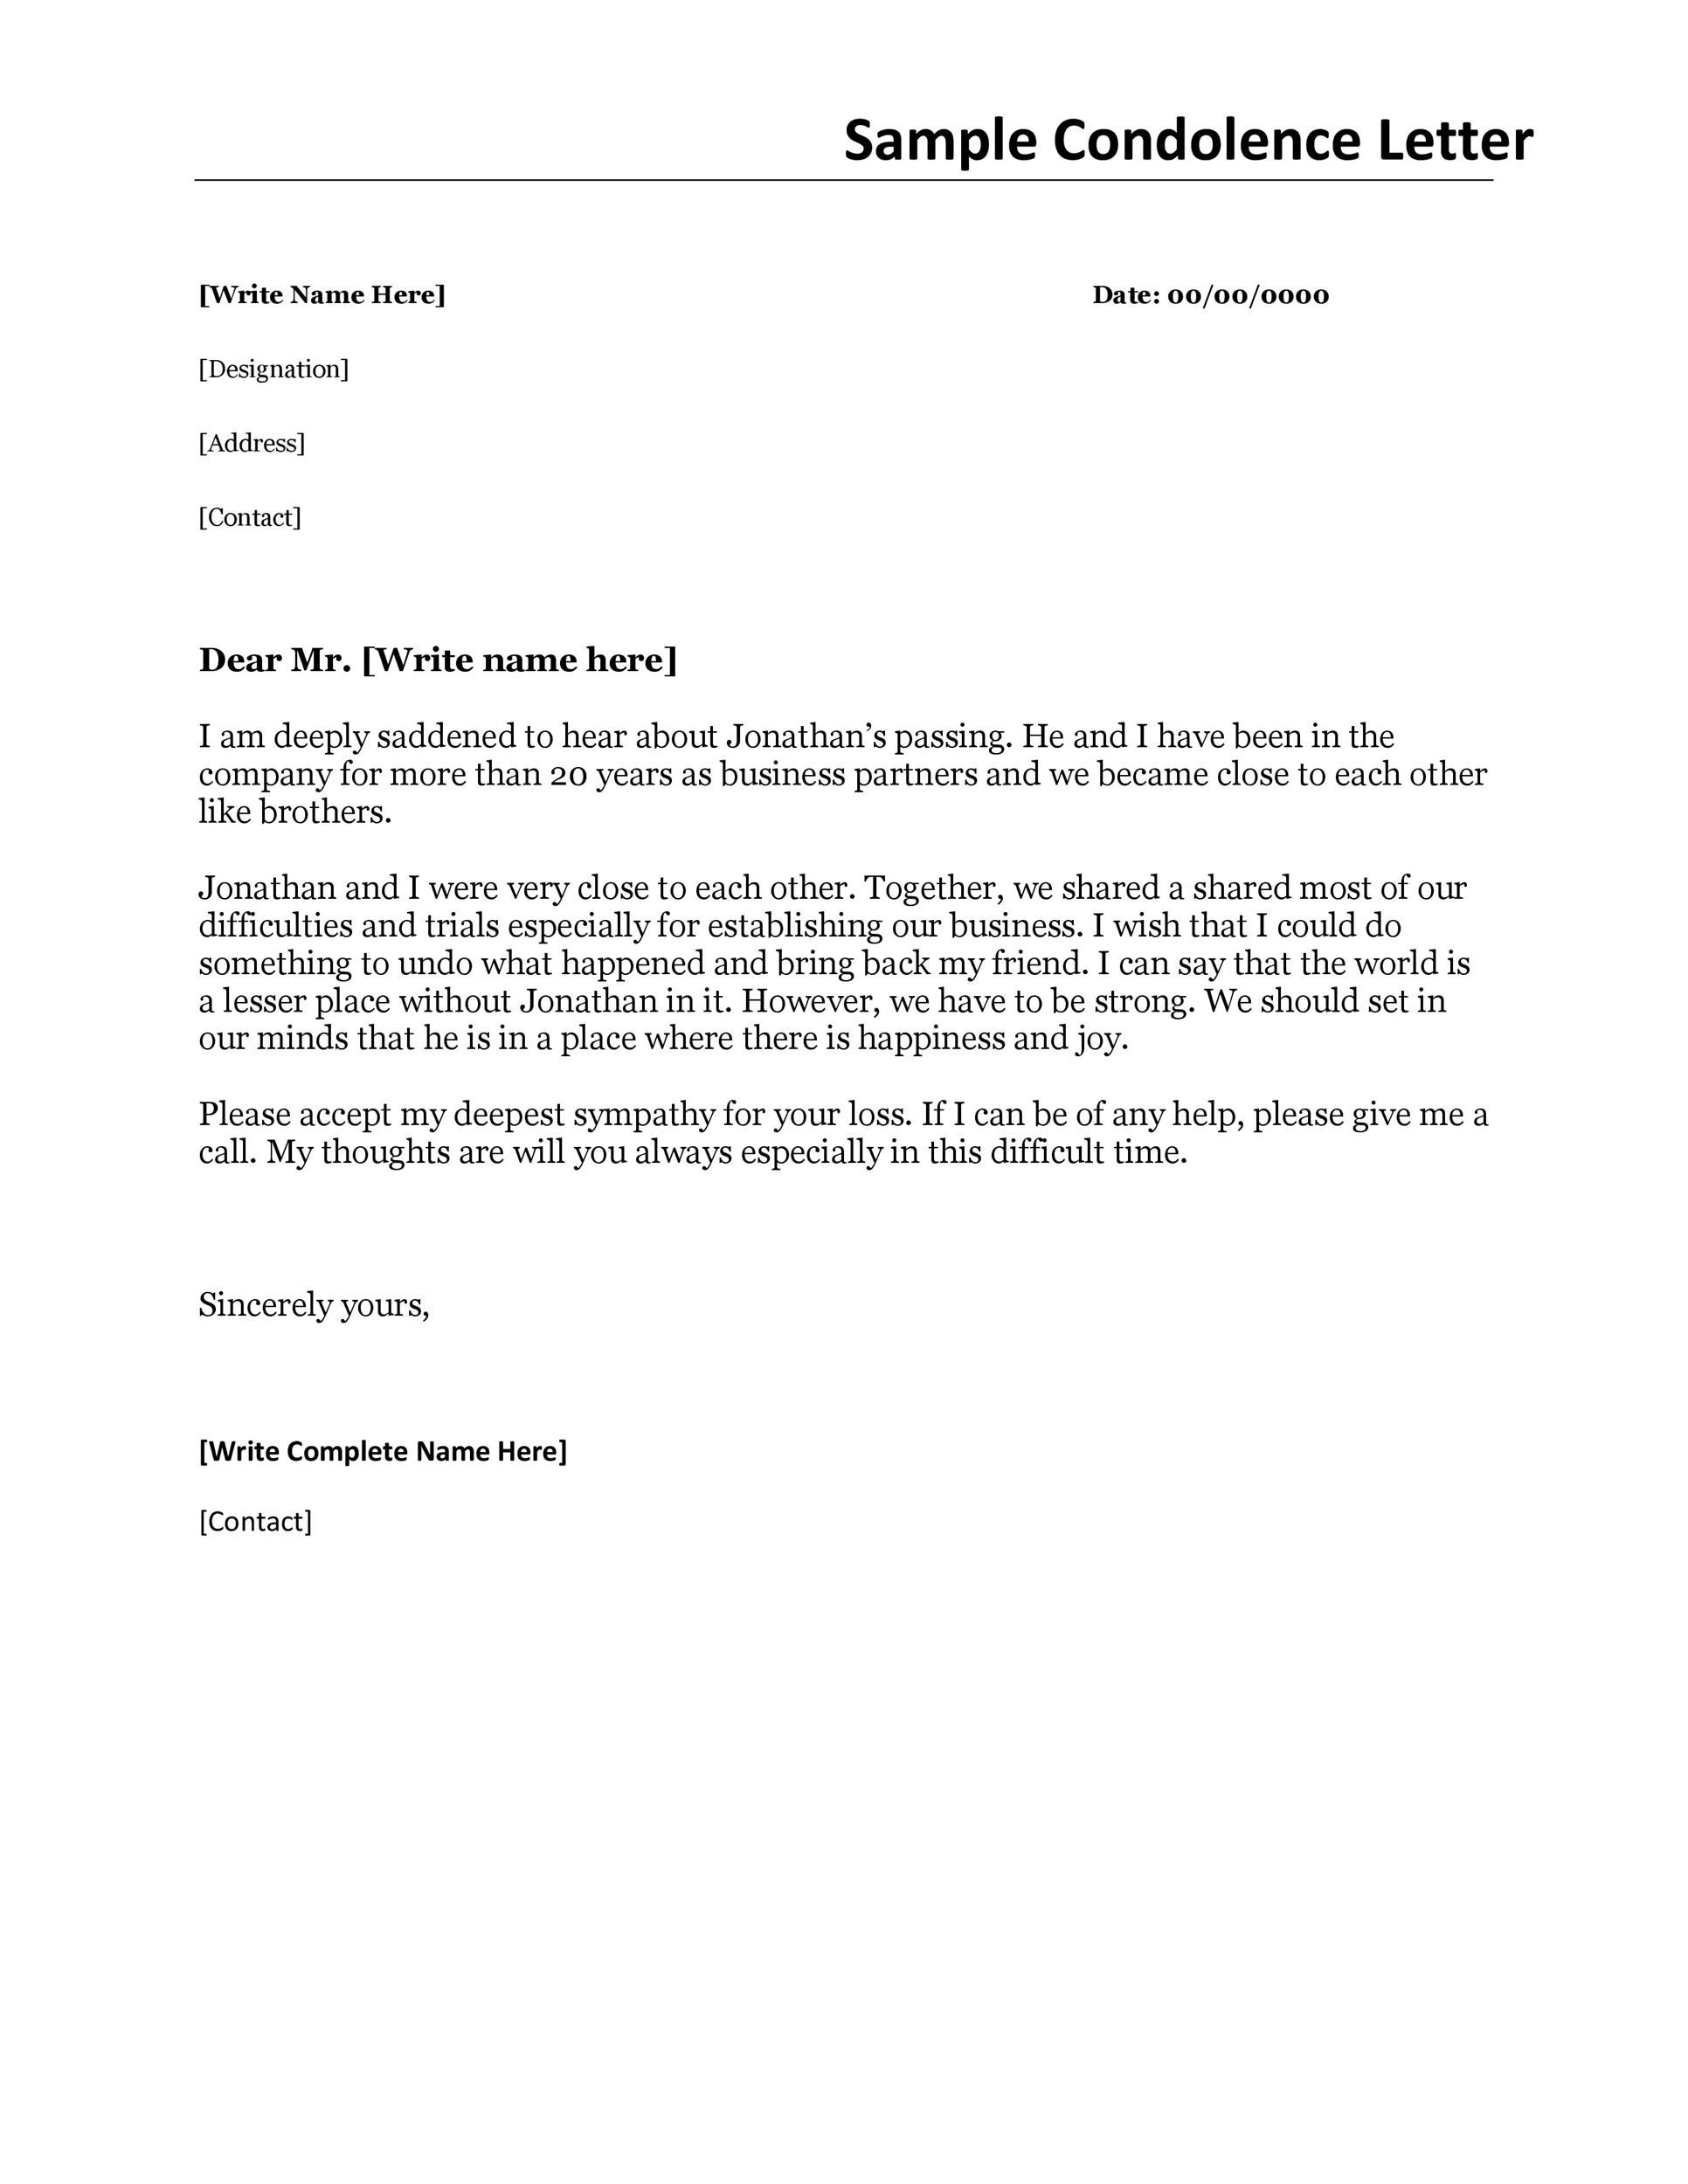 how to write a condolence letter beautiful how to write a condolence letter cover letter 32267